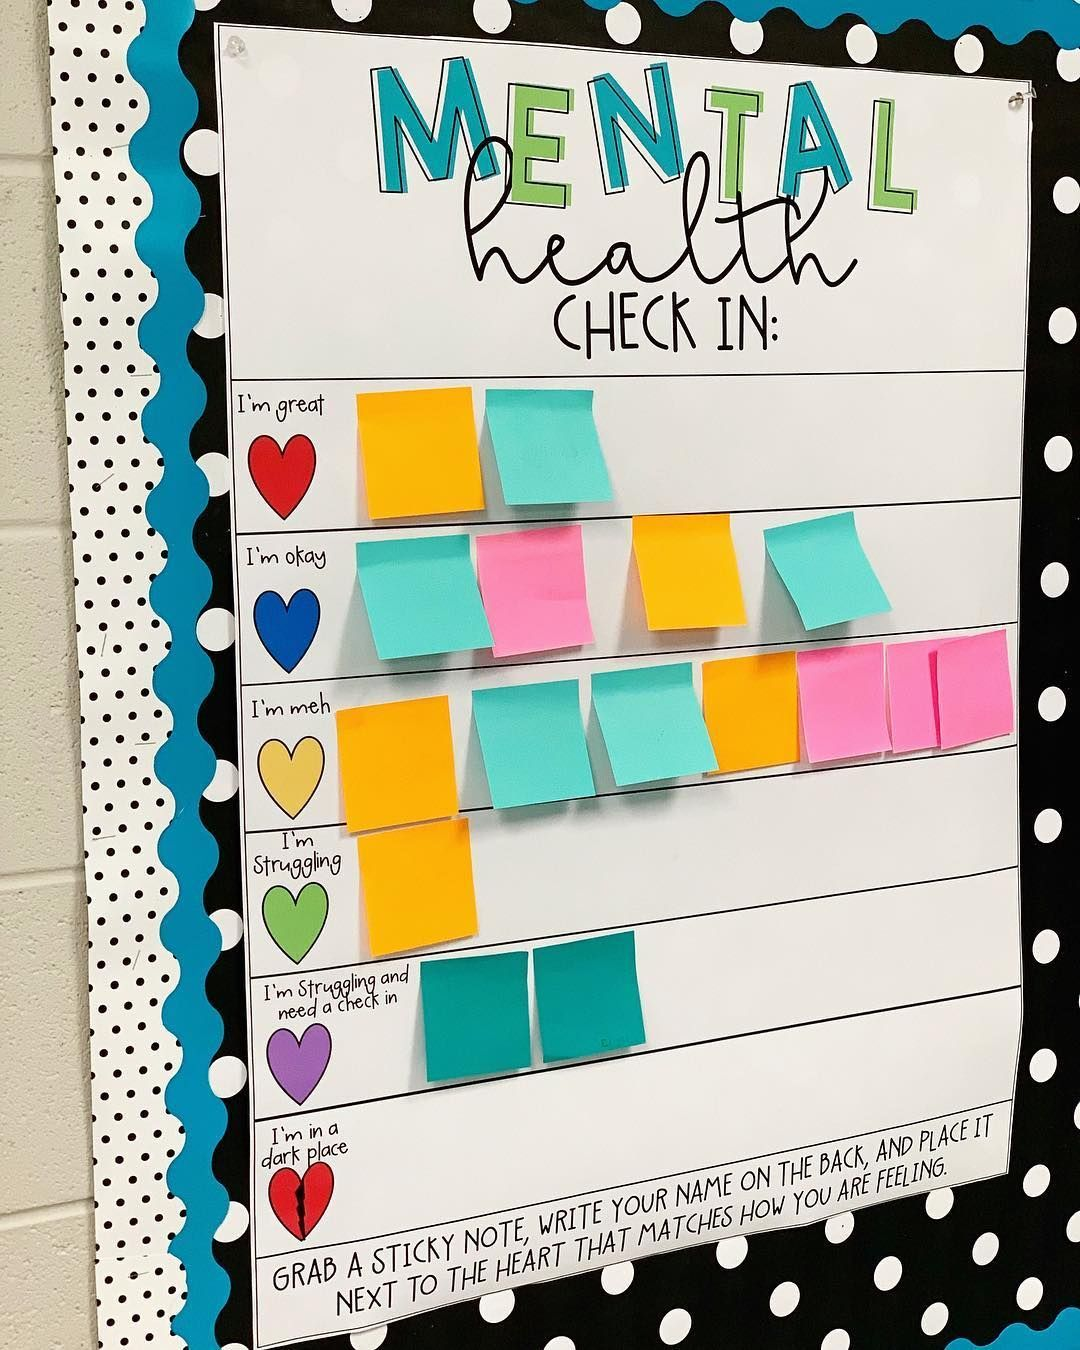 Erin Castillo an educator at John F Kennedy High School in Freemont California created a mental health checkin chart for her students